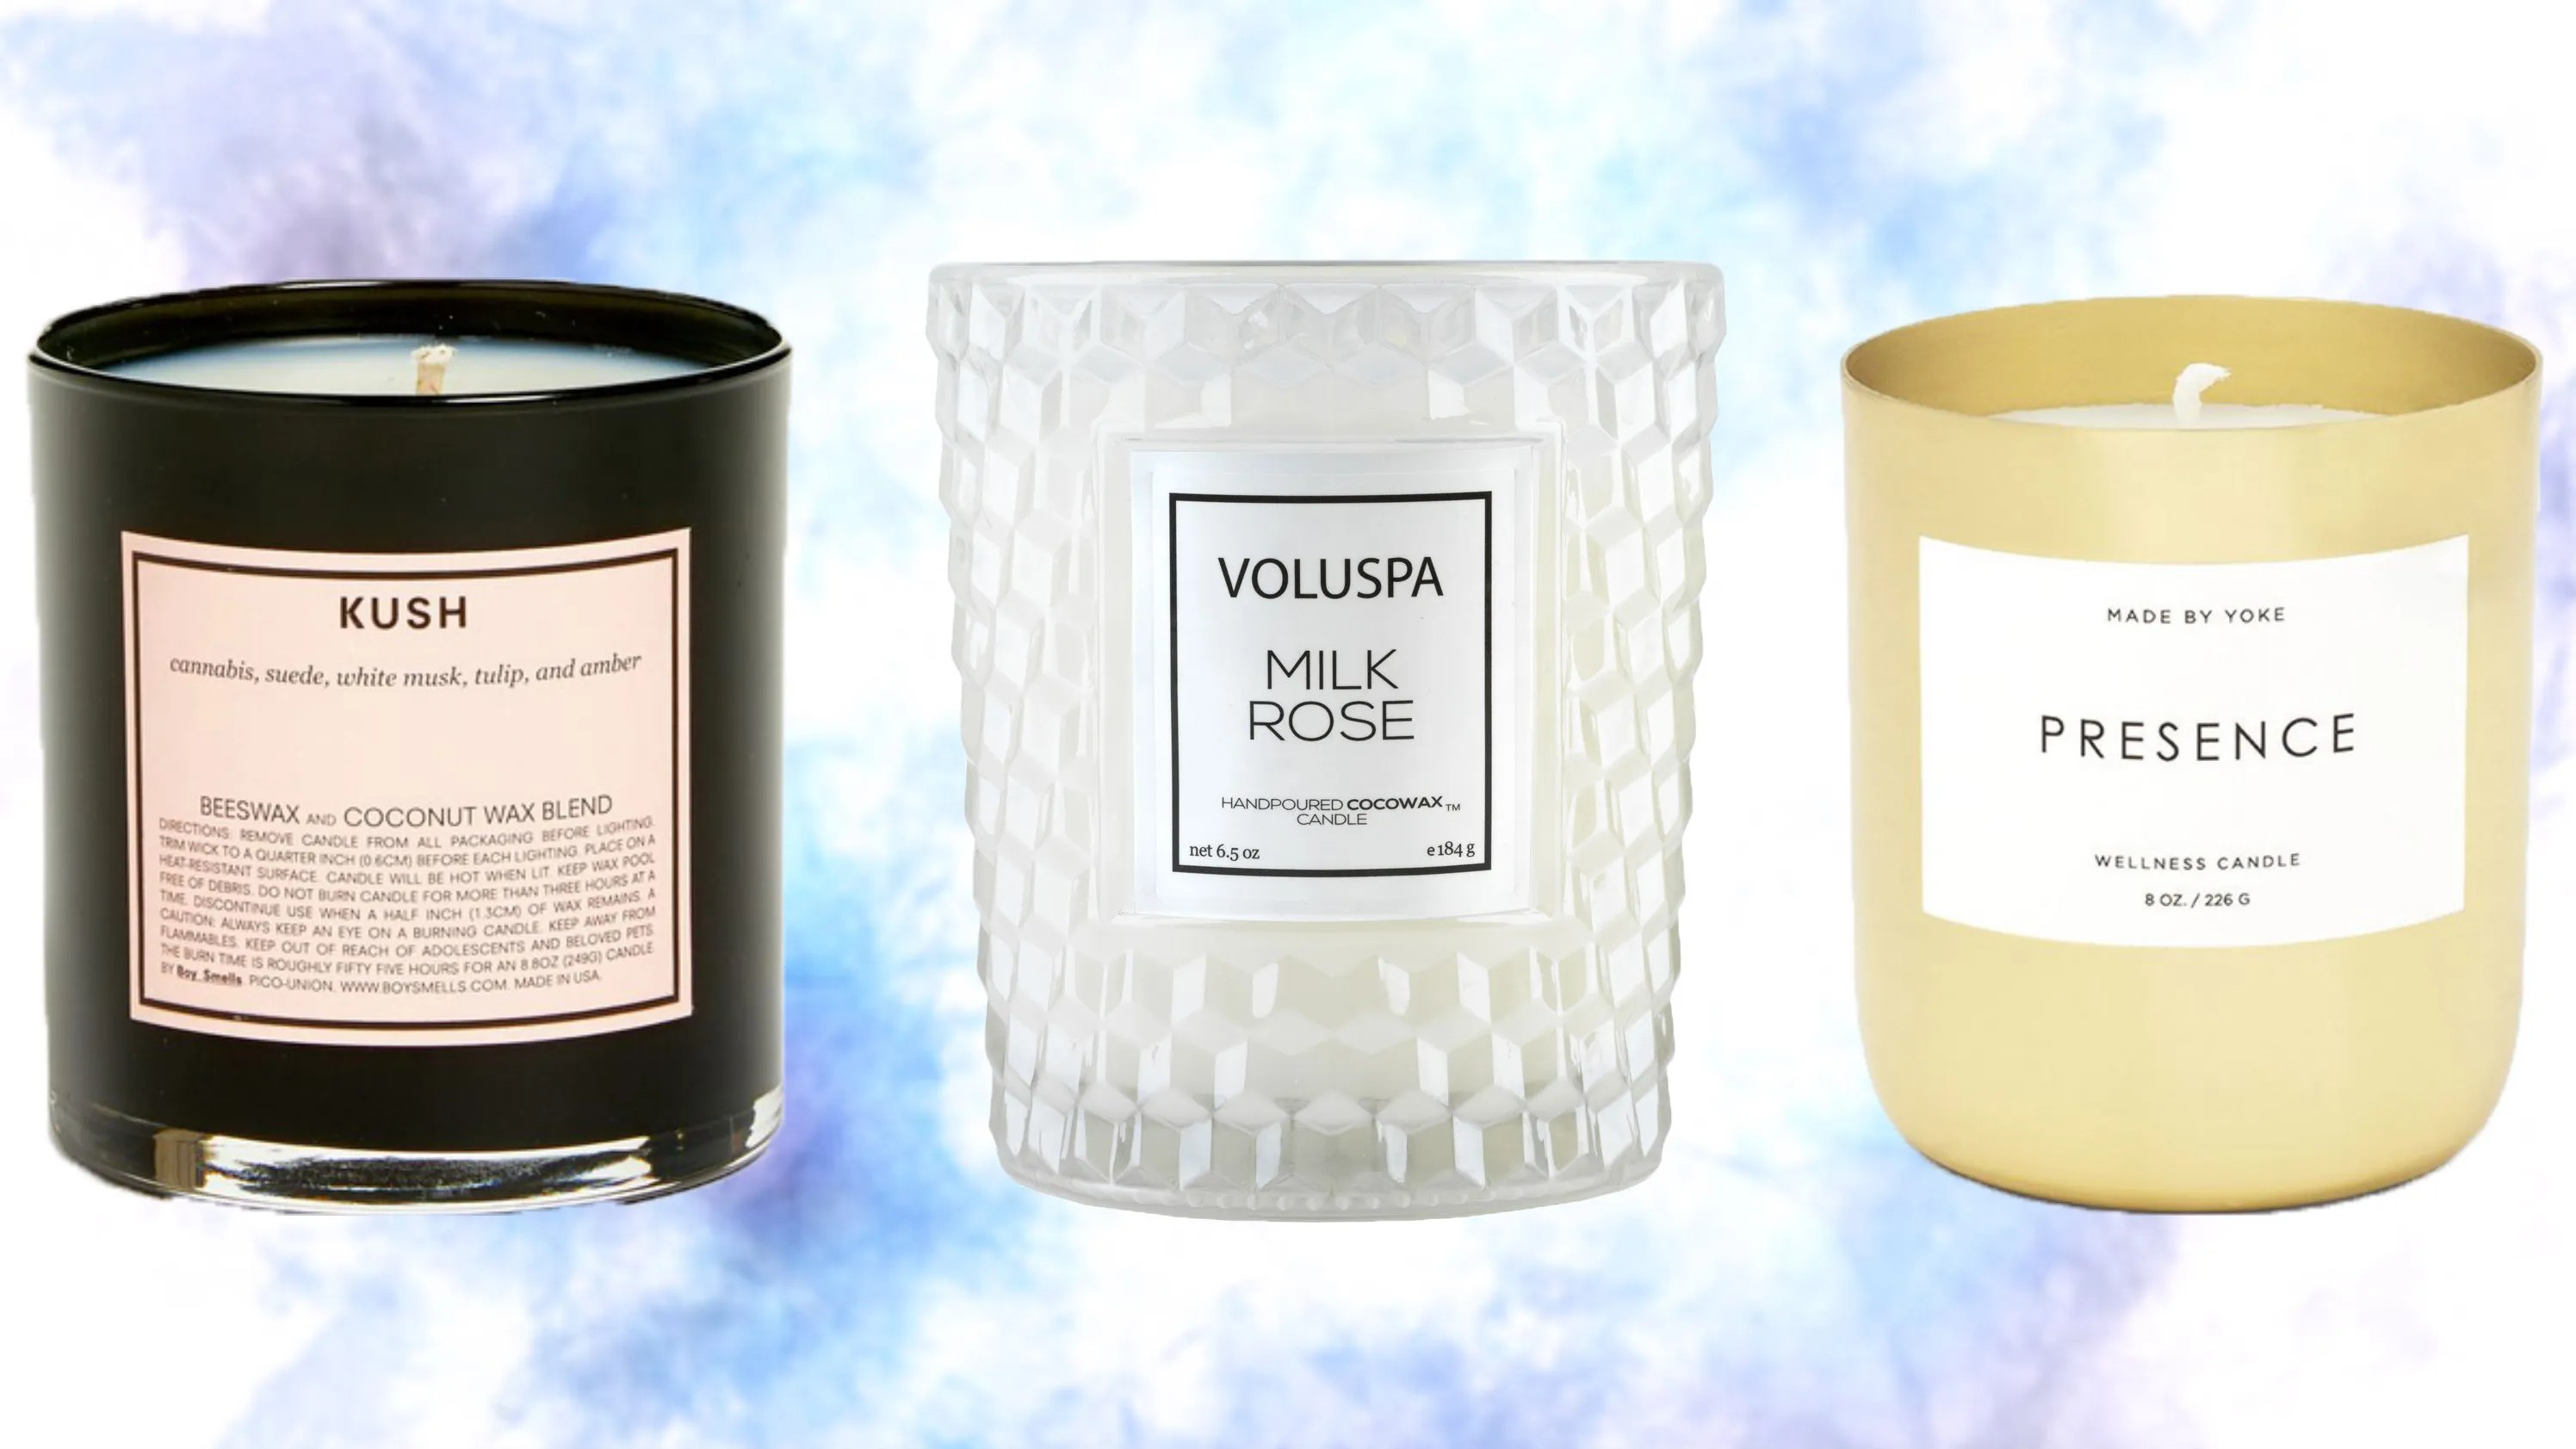 Buy Candles Online The 16 Best Scented Candles To Buy Online Allure